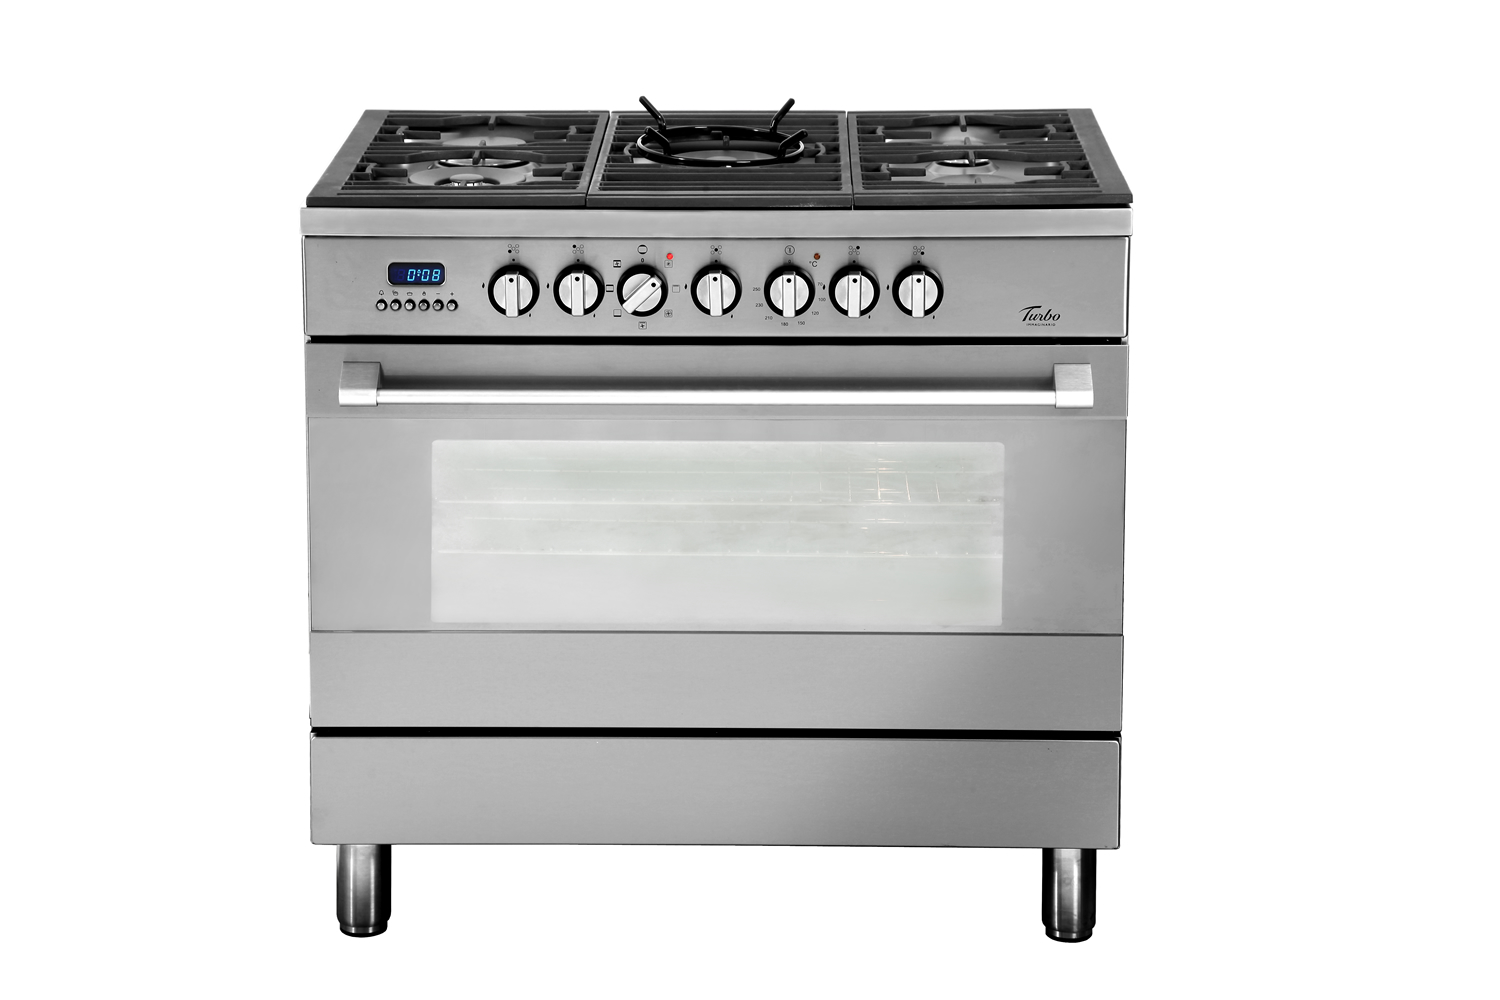 yeobuild homestore Turbo Immaginario Diamond 90cm 119 Litres Professional Cooker